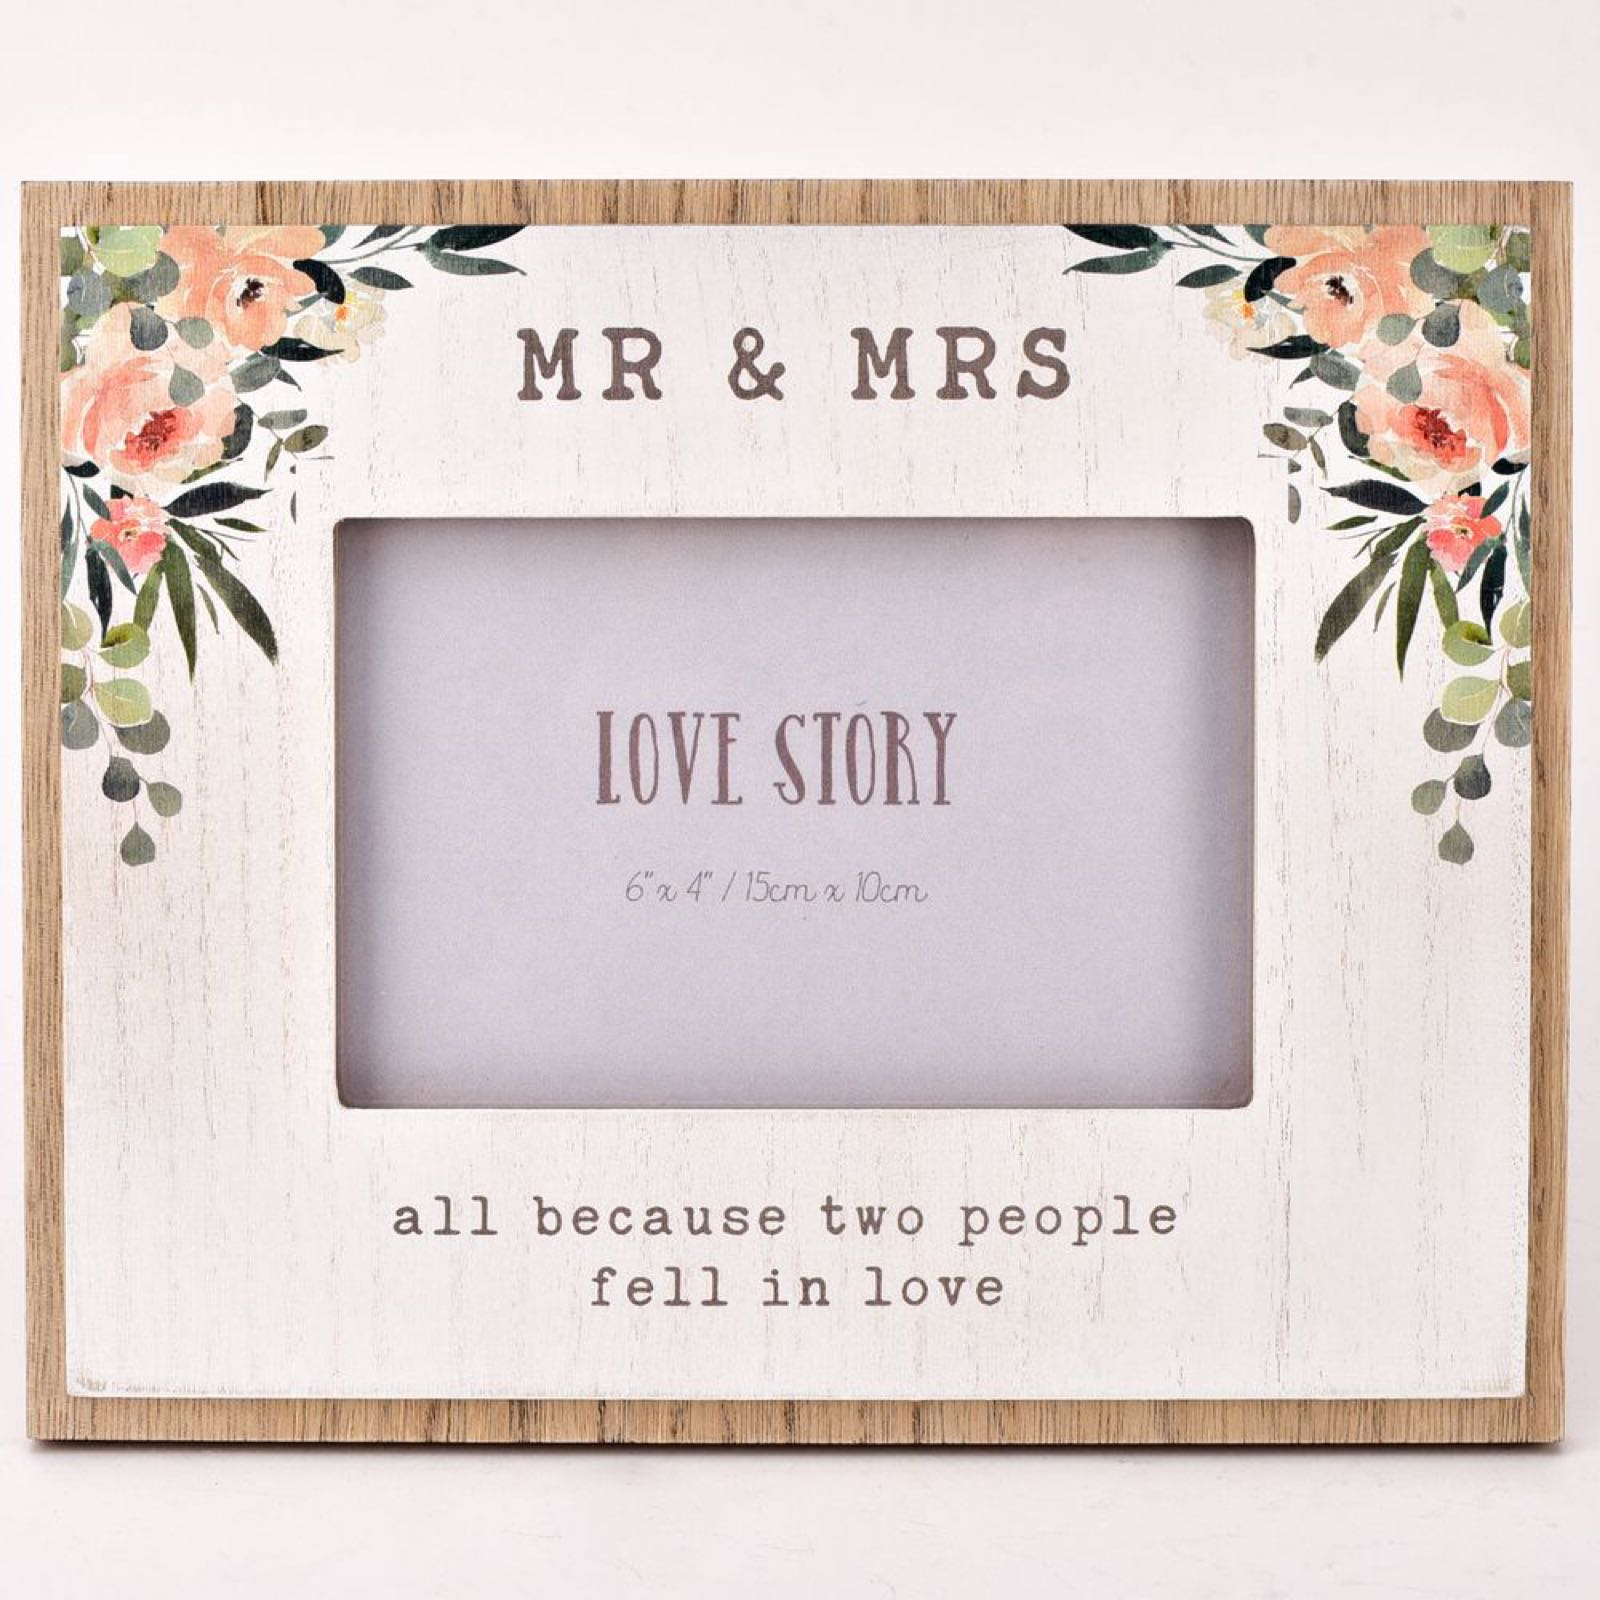 "Mr & Mrs 6""x4"" Photo Frame"